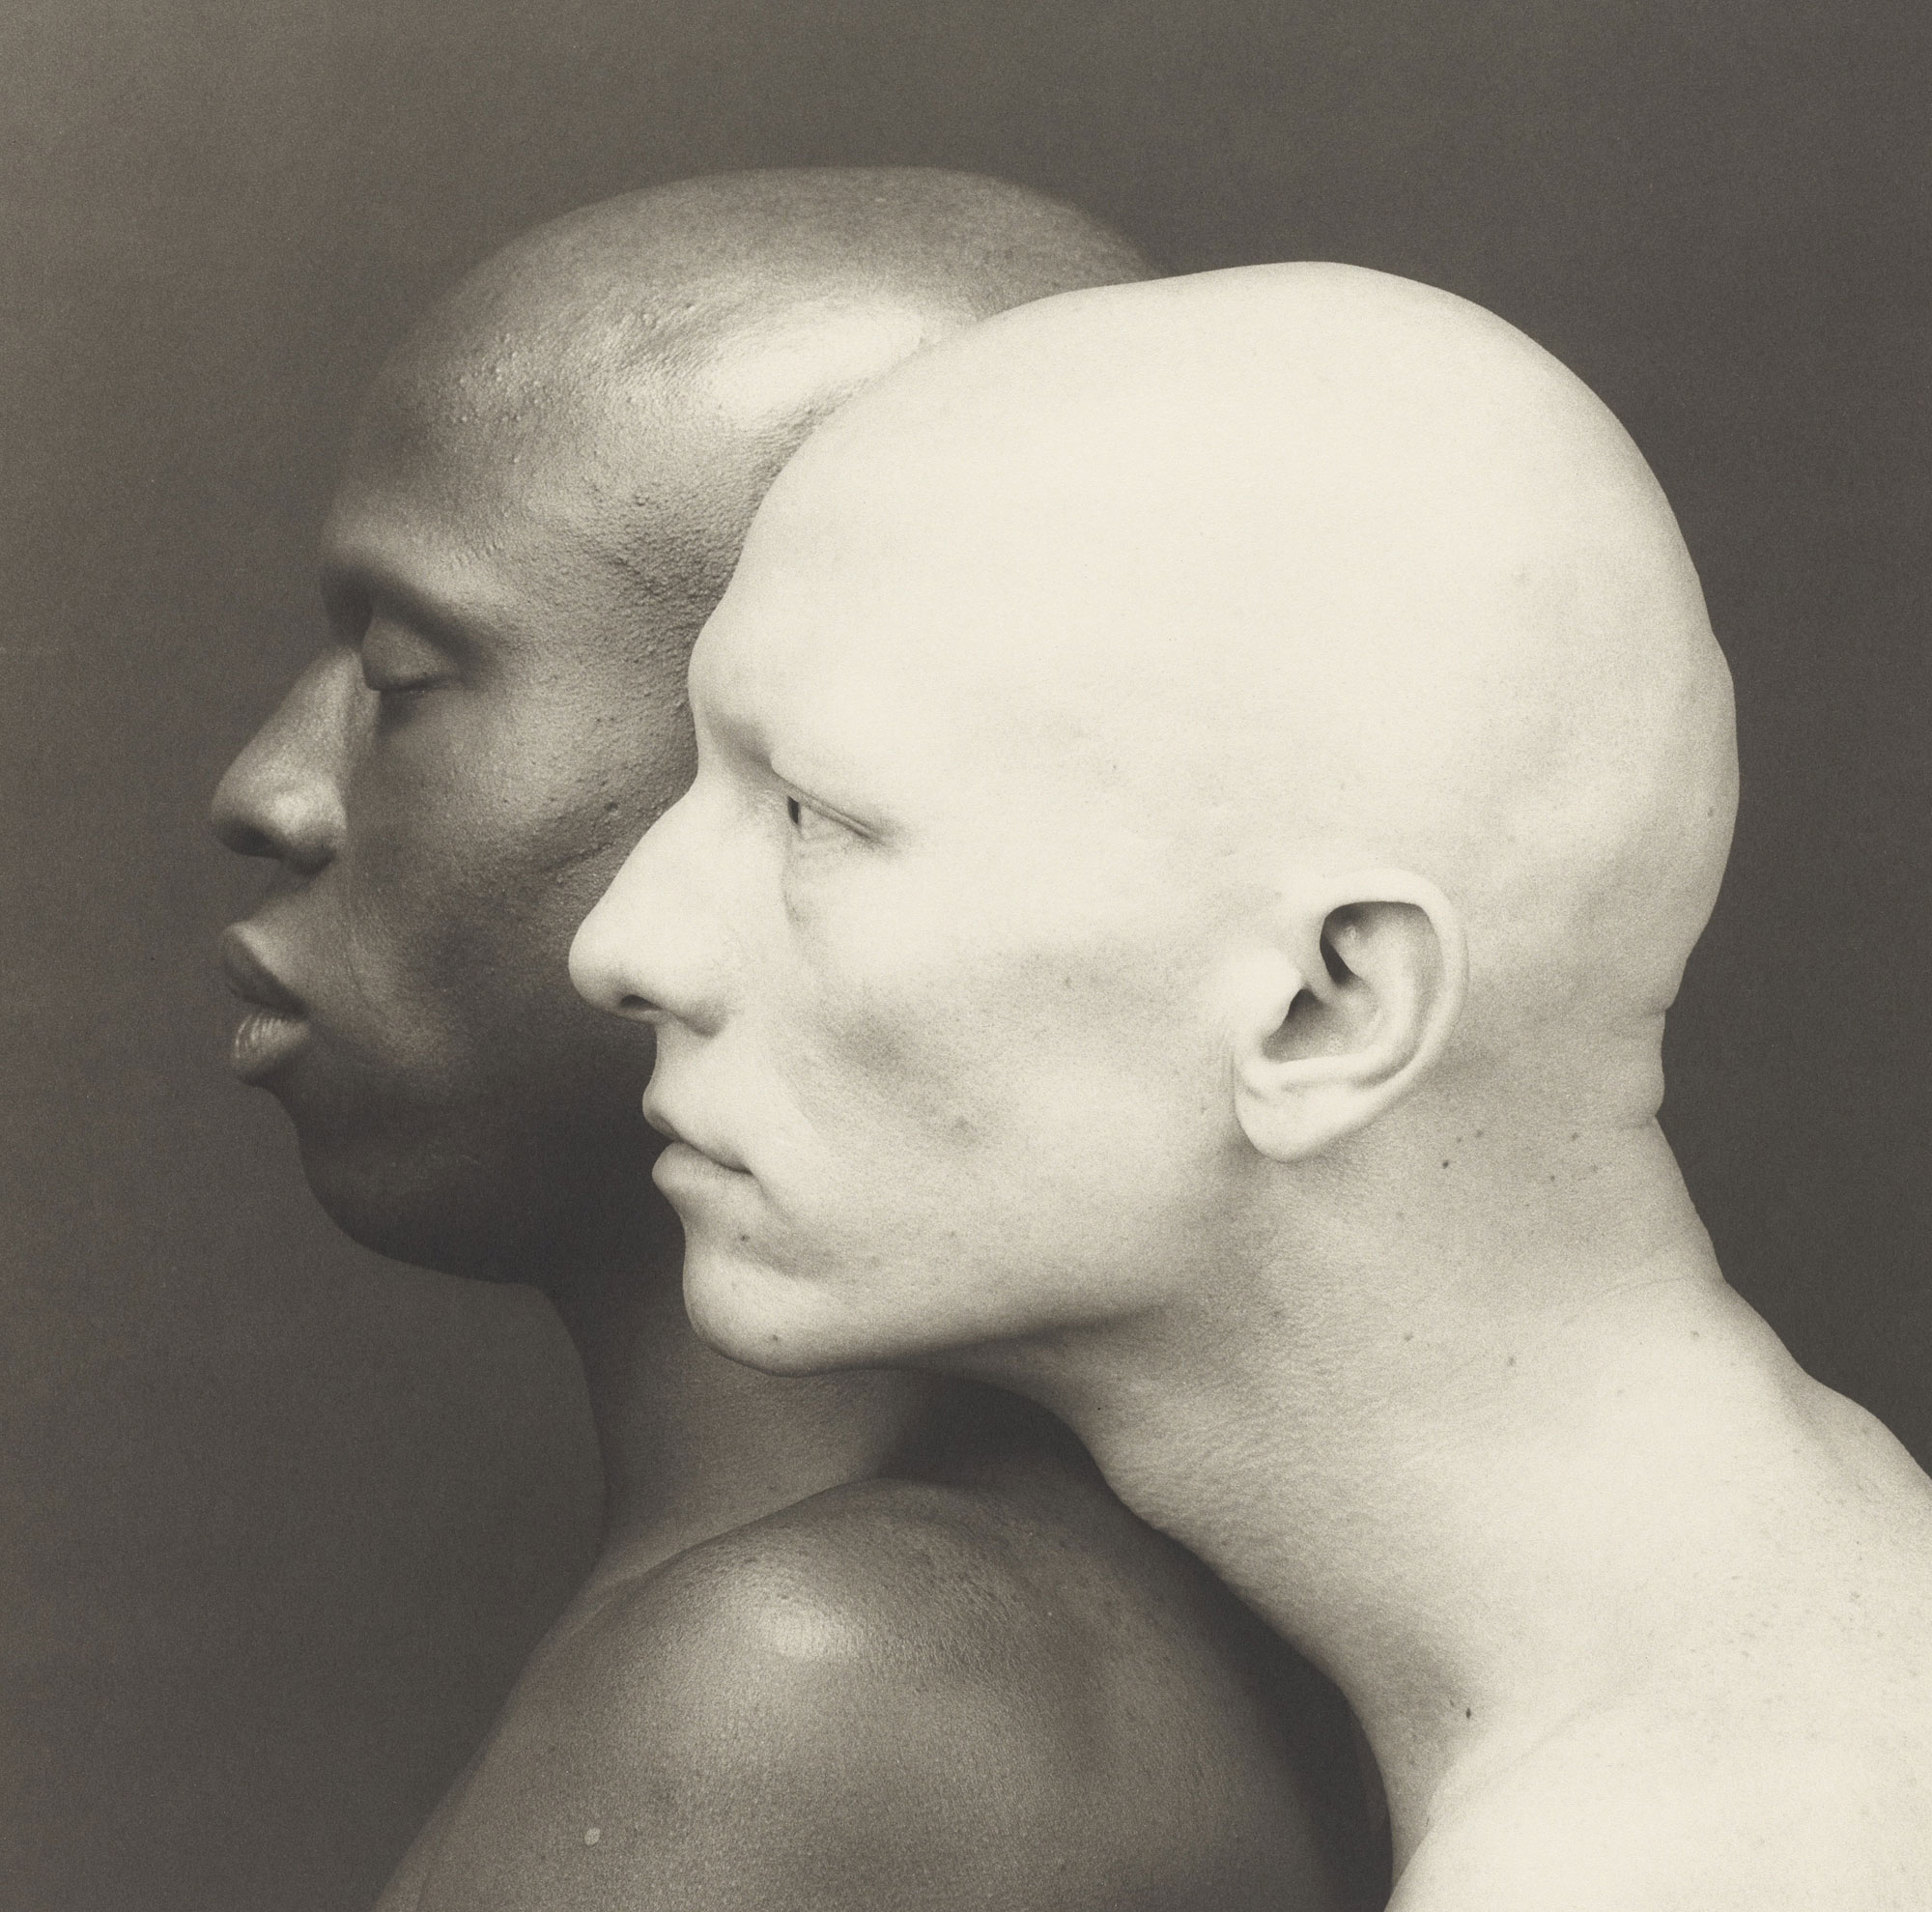 foto: Robert Mapplethorpe - Ken Moody and Robert Sherman (1984)